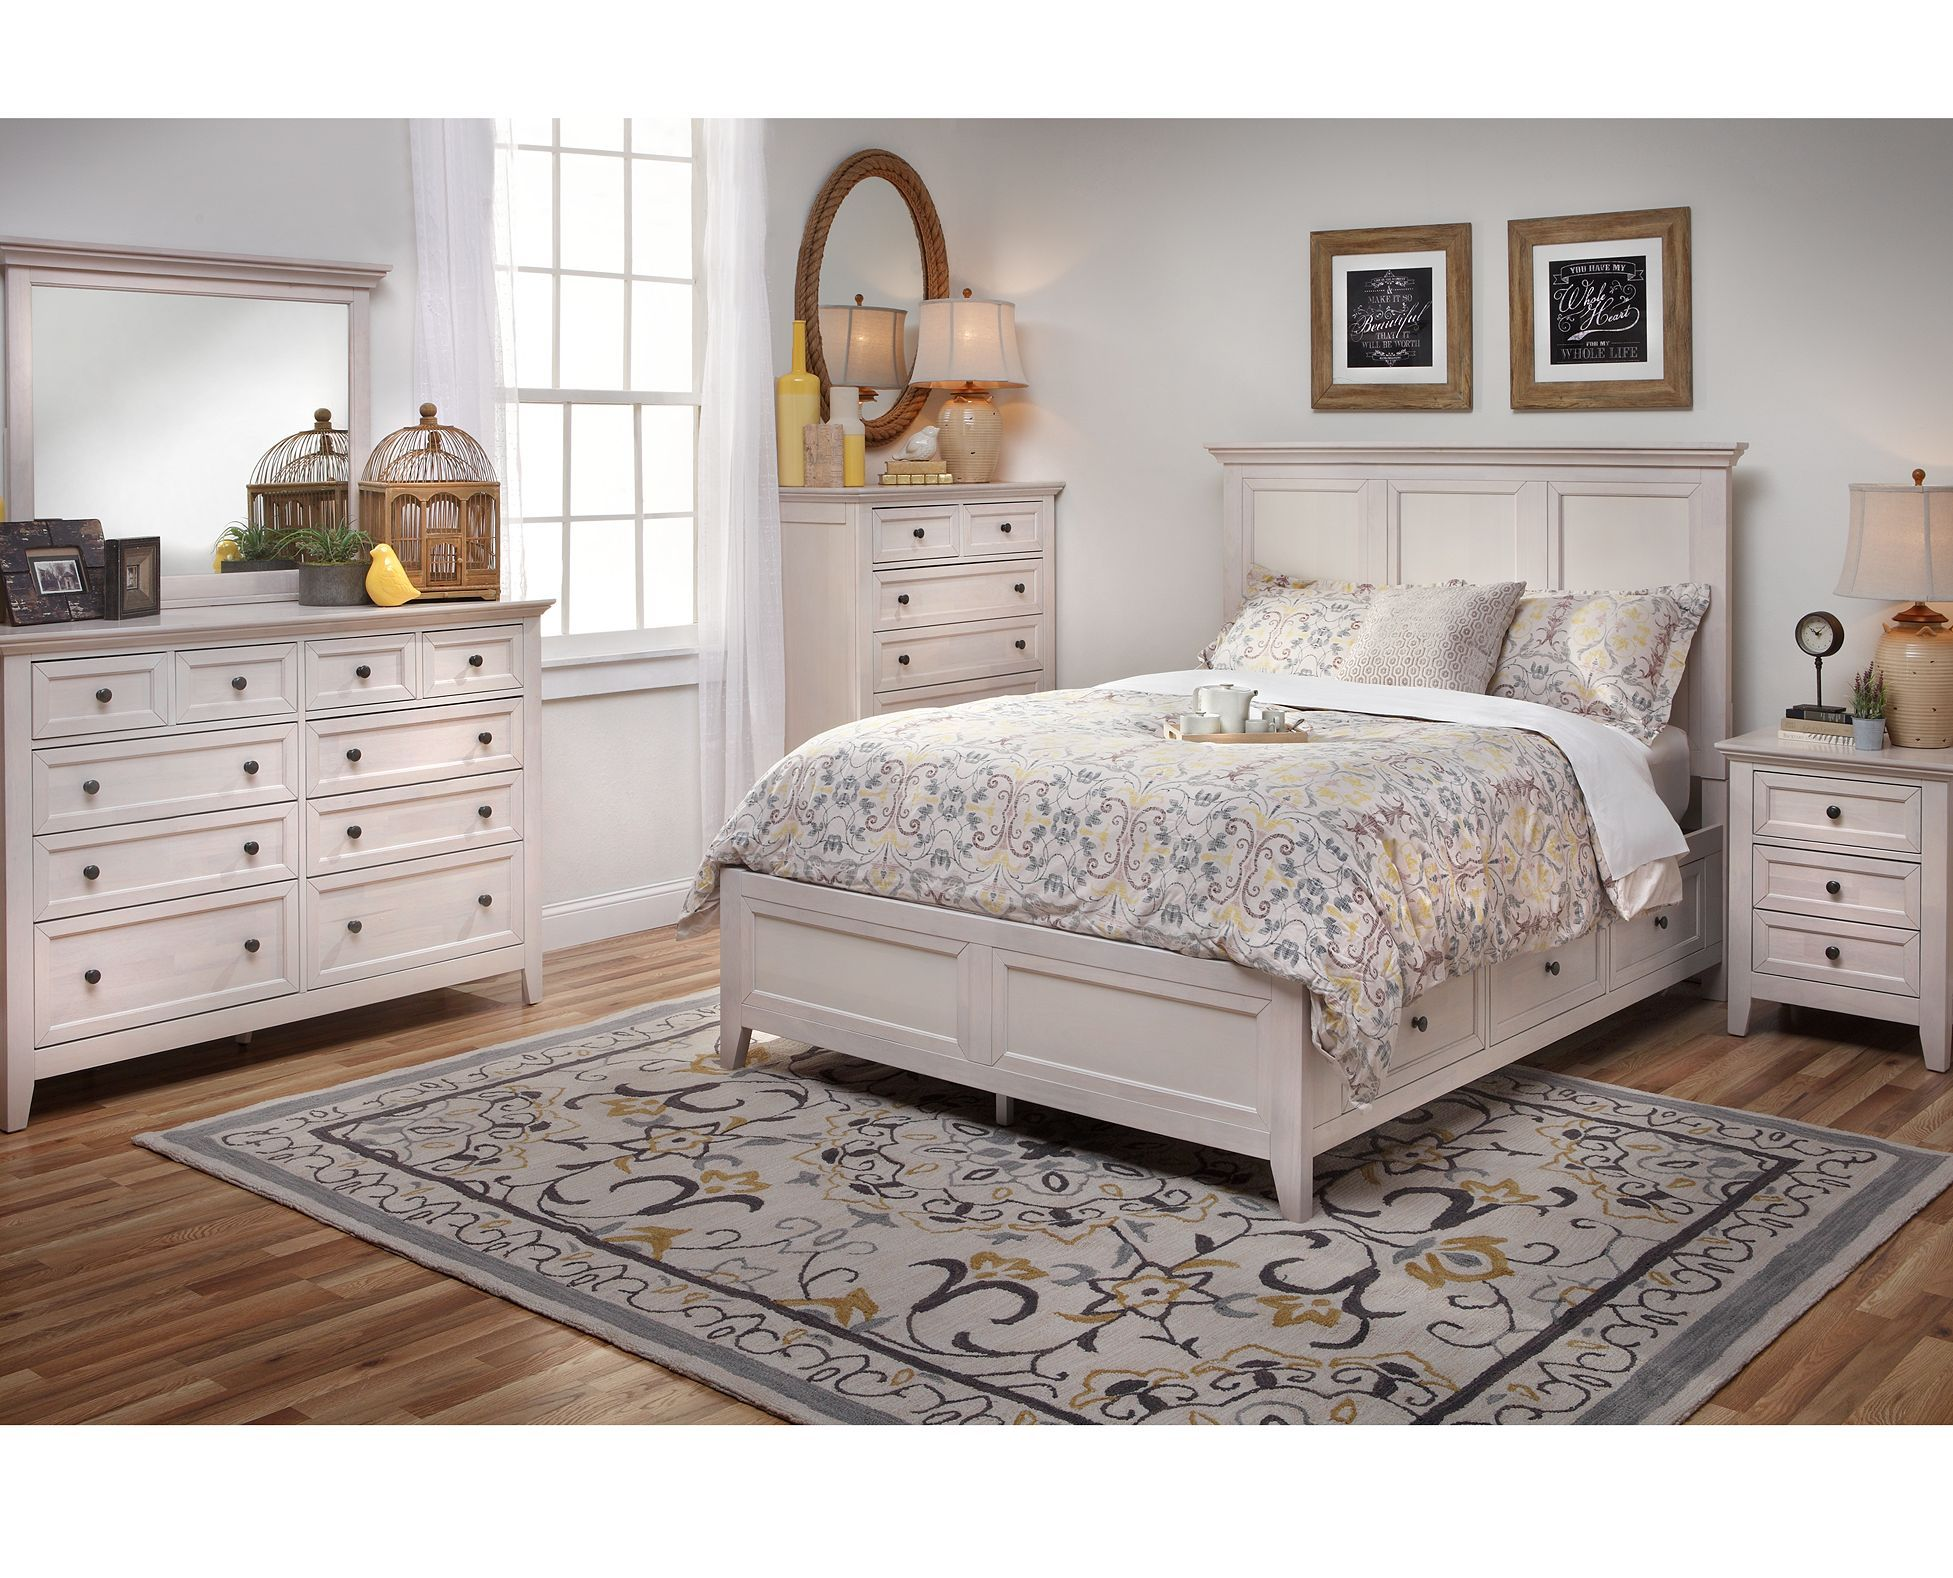 Bonn Storage Bedroom Set Oak Bedroom Furniture Sets White